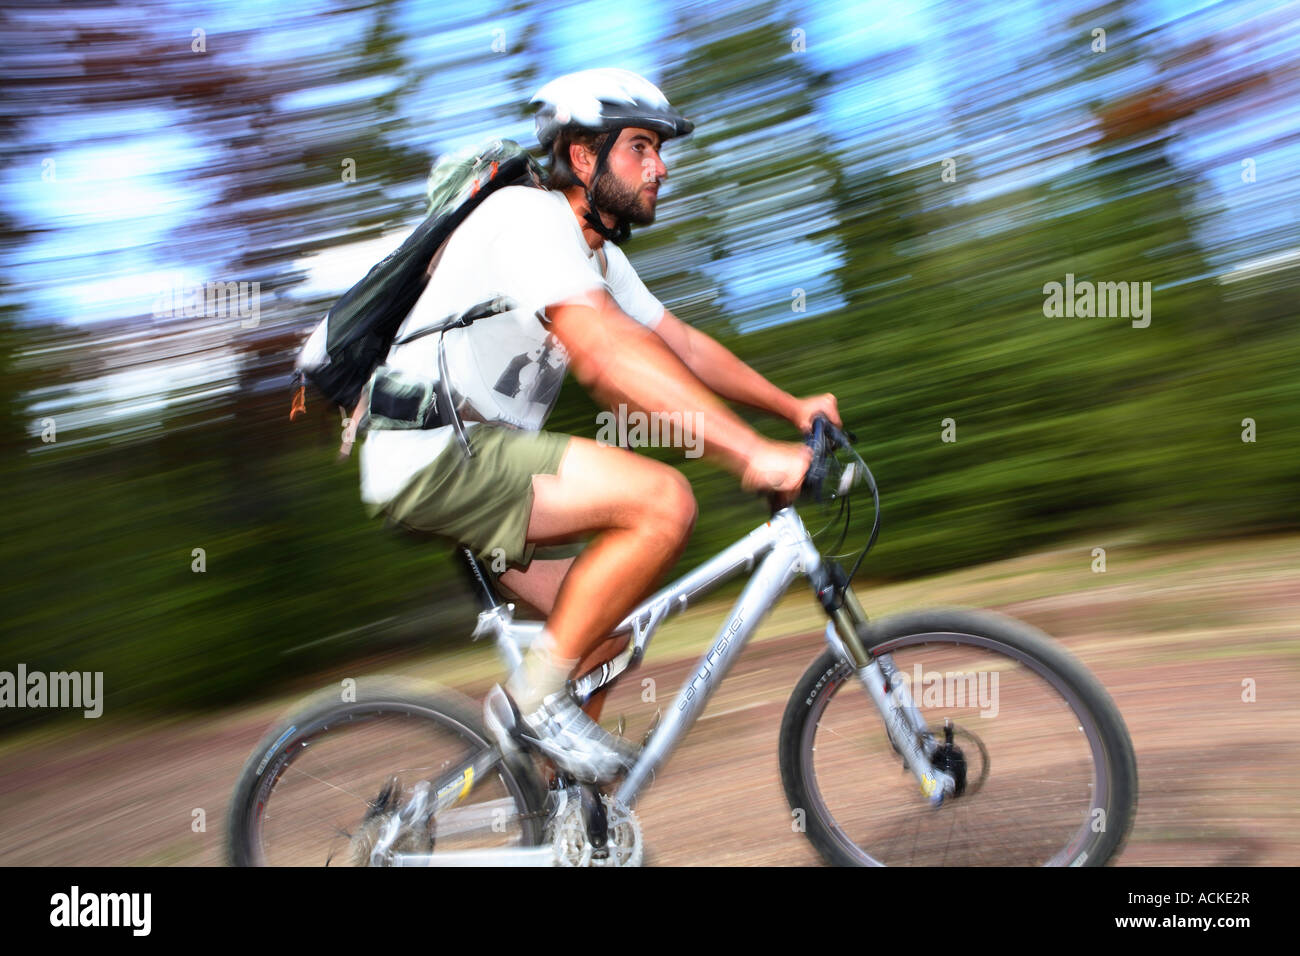 Man on mountain bike with blurred background Stock Photo